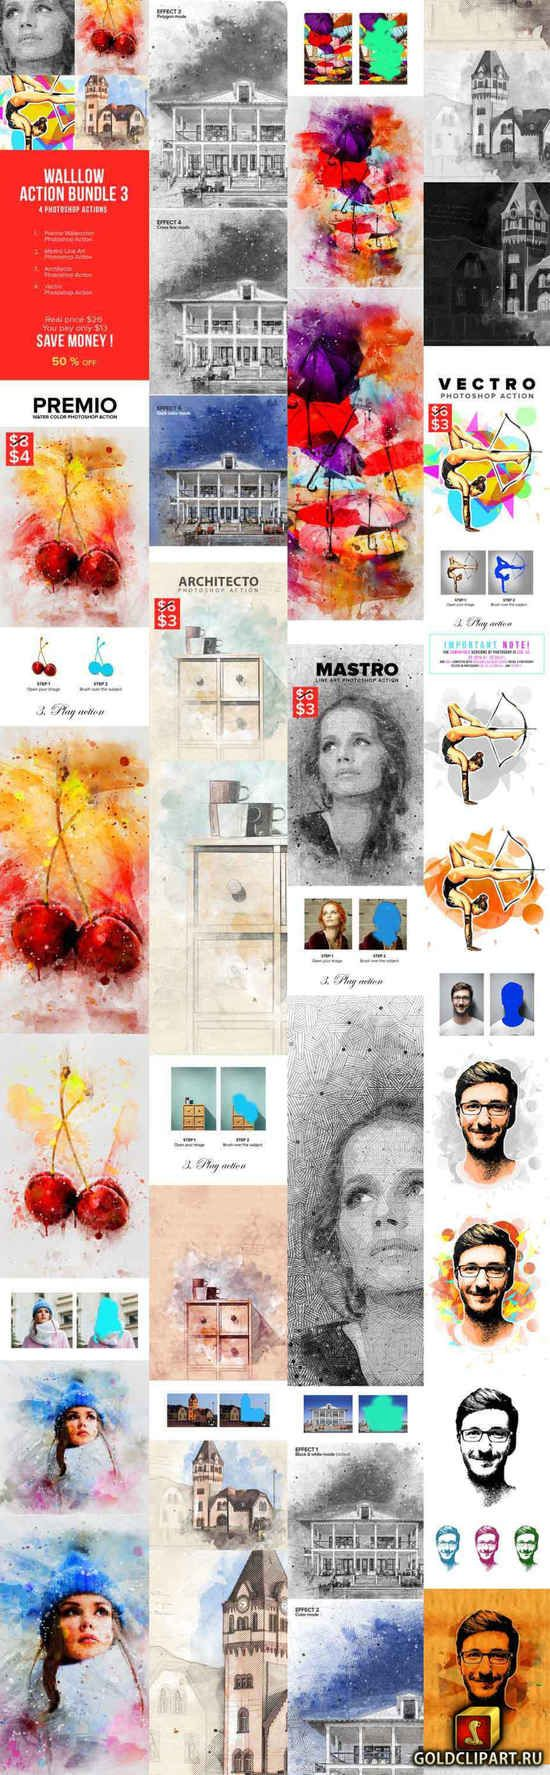 Walllow Action Bundle 3 22229083 Line Art Photoshop Watercolor